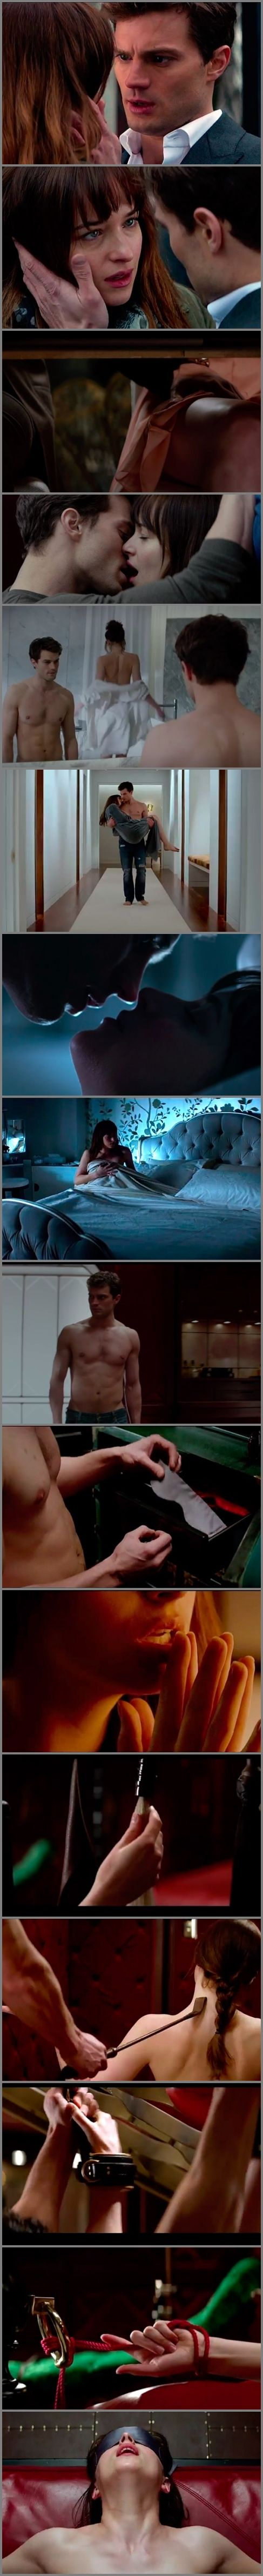 50 Shades of Grey Trailer 24/07/2014 #fiftyshadestrailer #fiftyshadesmovie